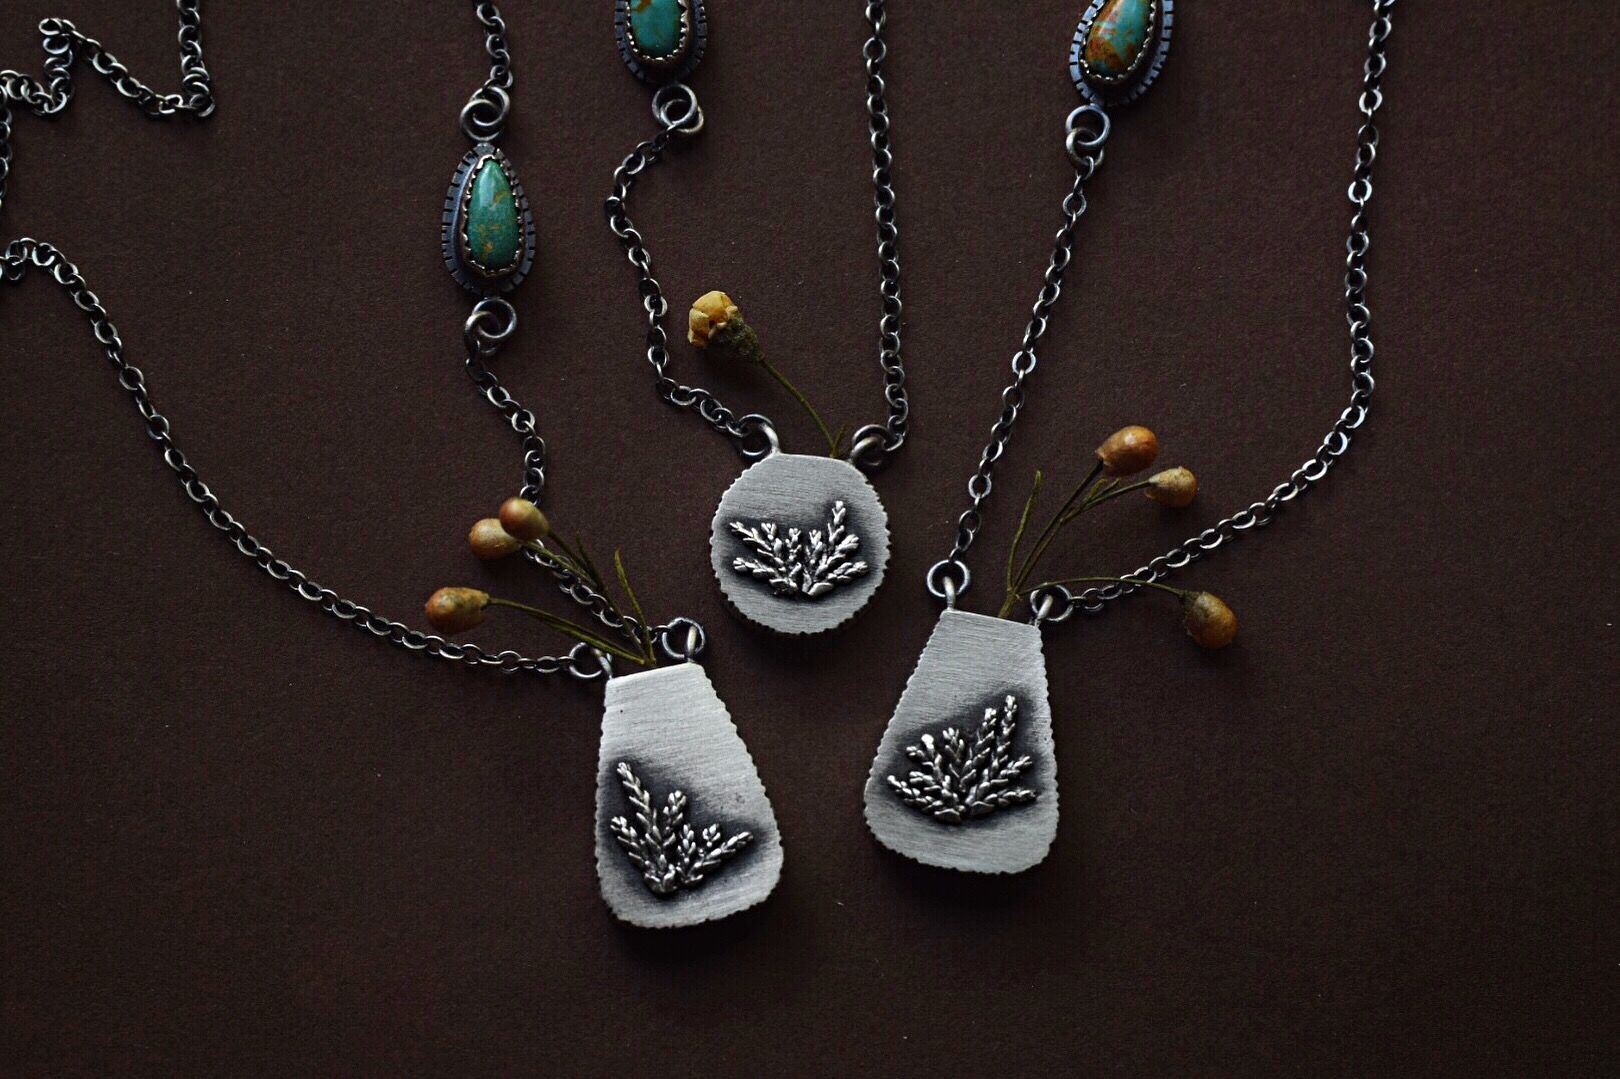 Bracelet and Earring set Necklace and Bracelet have a Silver medallion with leaf accent earring has leaves Silver Tree and leaf Necklace